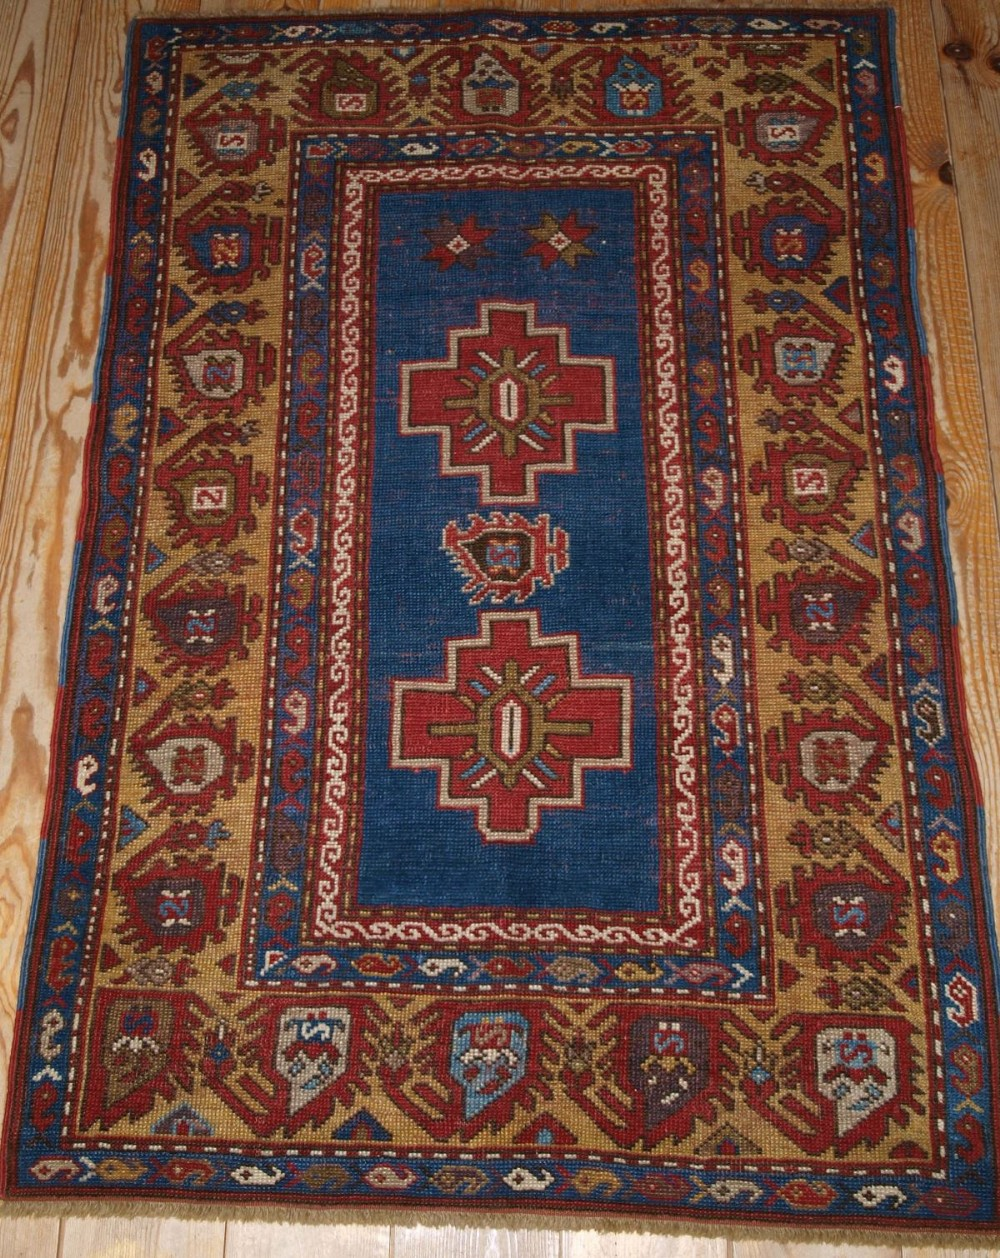 antique caucasian rug of small size unusual design late 19th cent